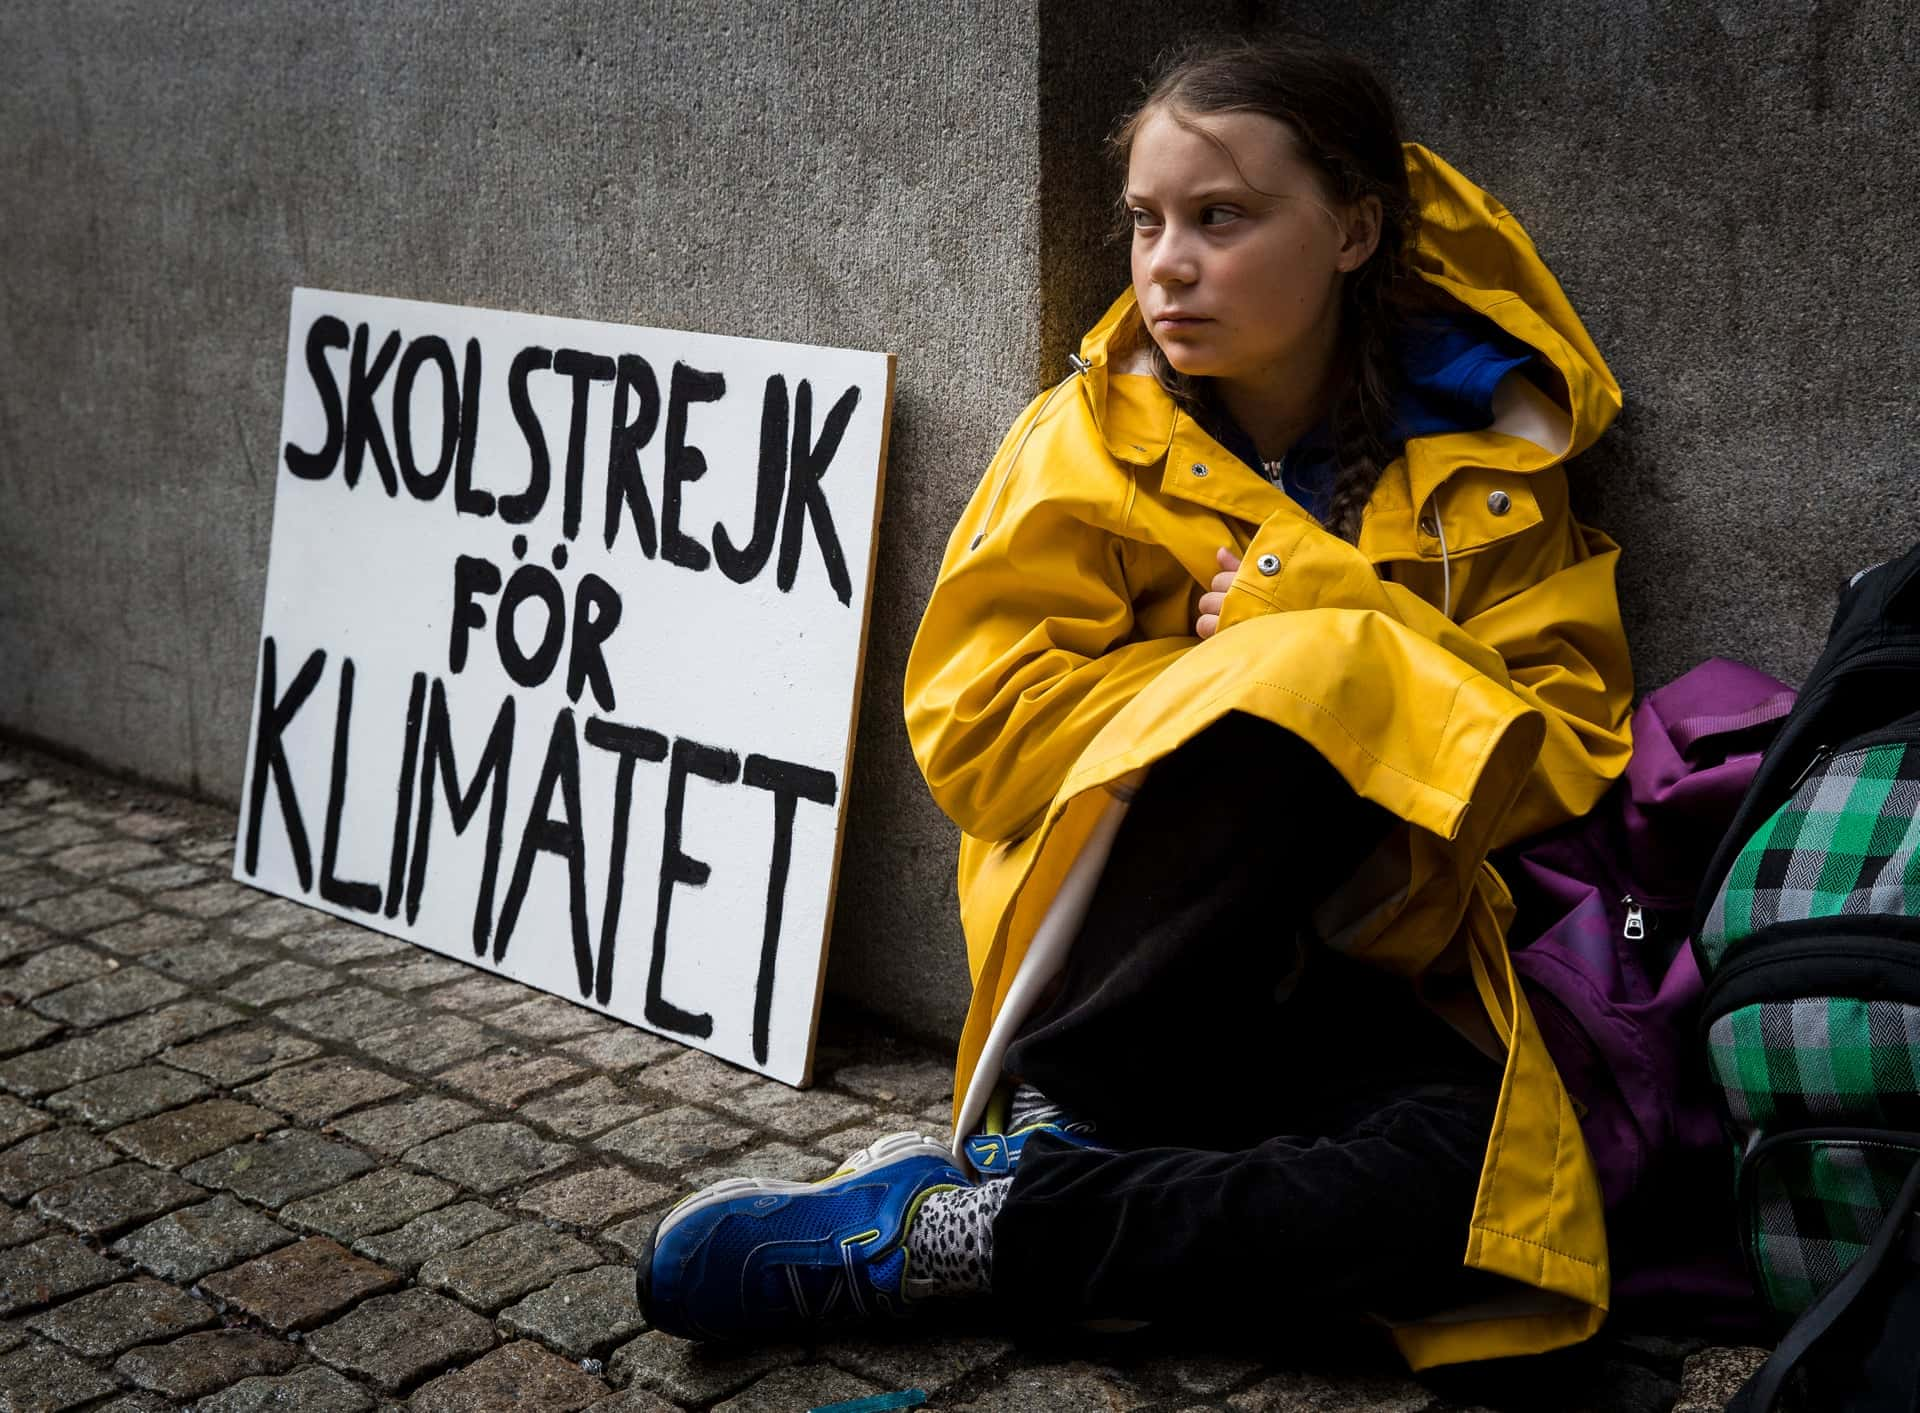 3789aad3651 March 15 School Strike: Students worldwide join Greta Thunberg to demand  action on climate change